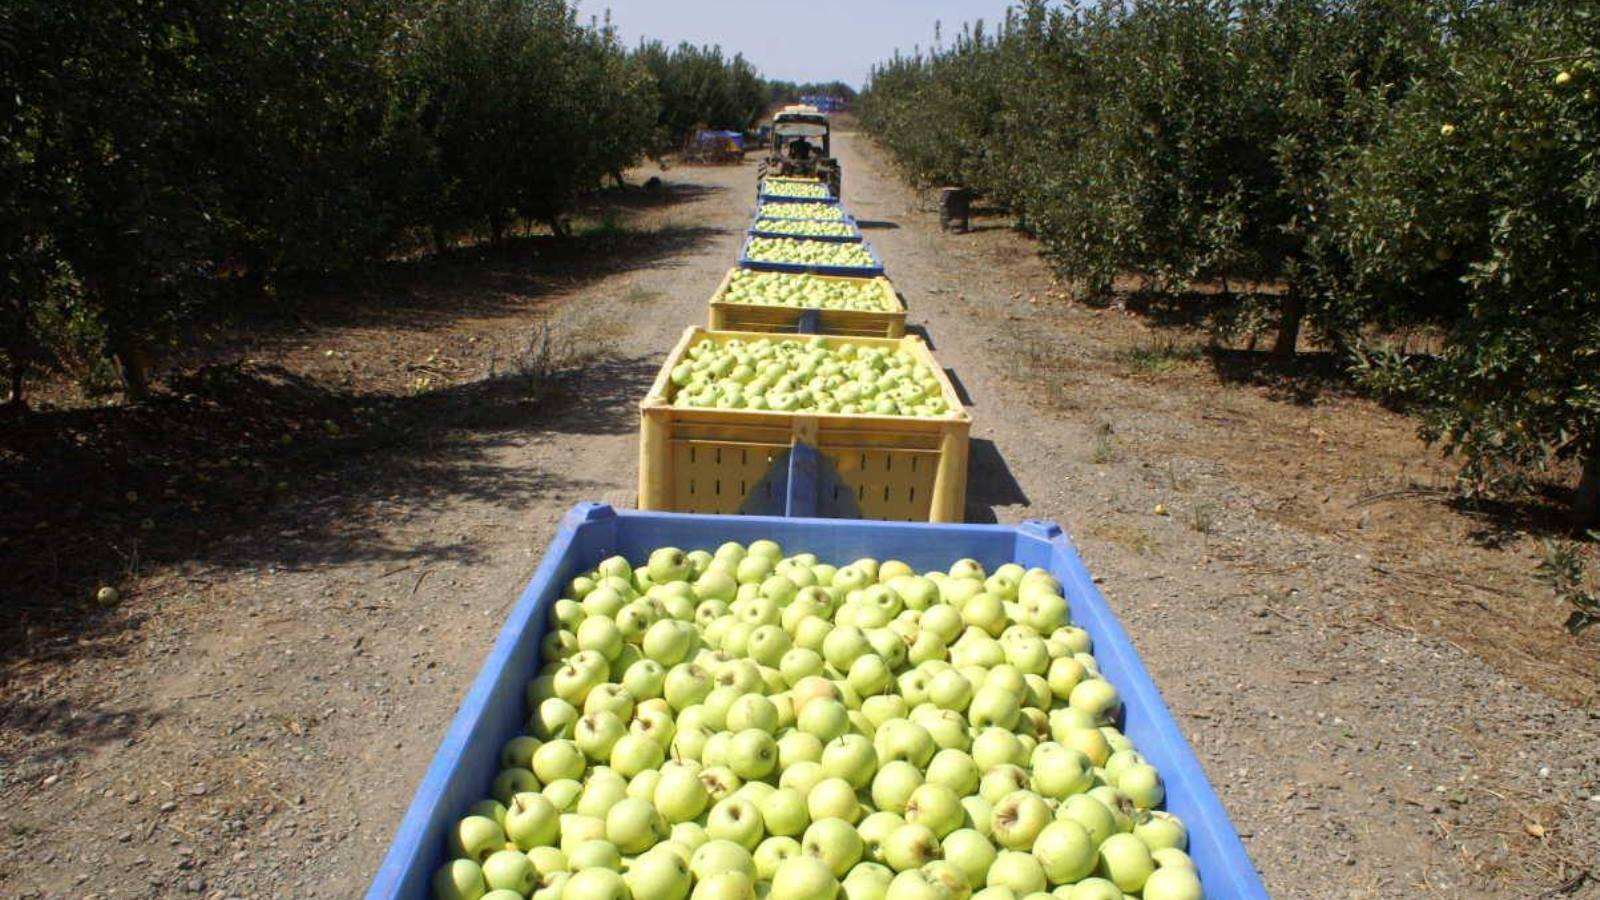 Harvesting apples in the Golan Heights. Photo via Beresheet Facebook page